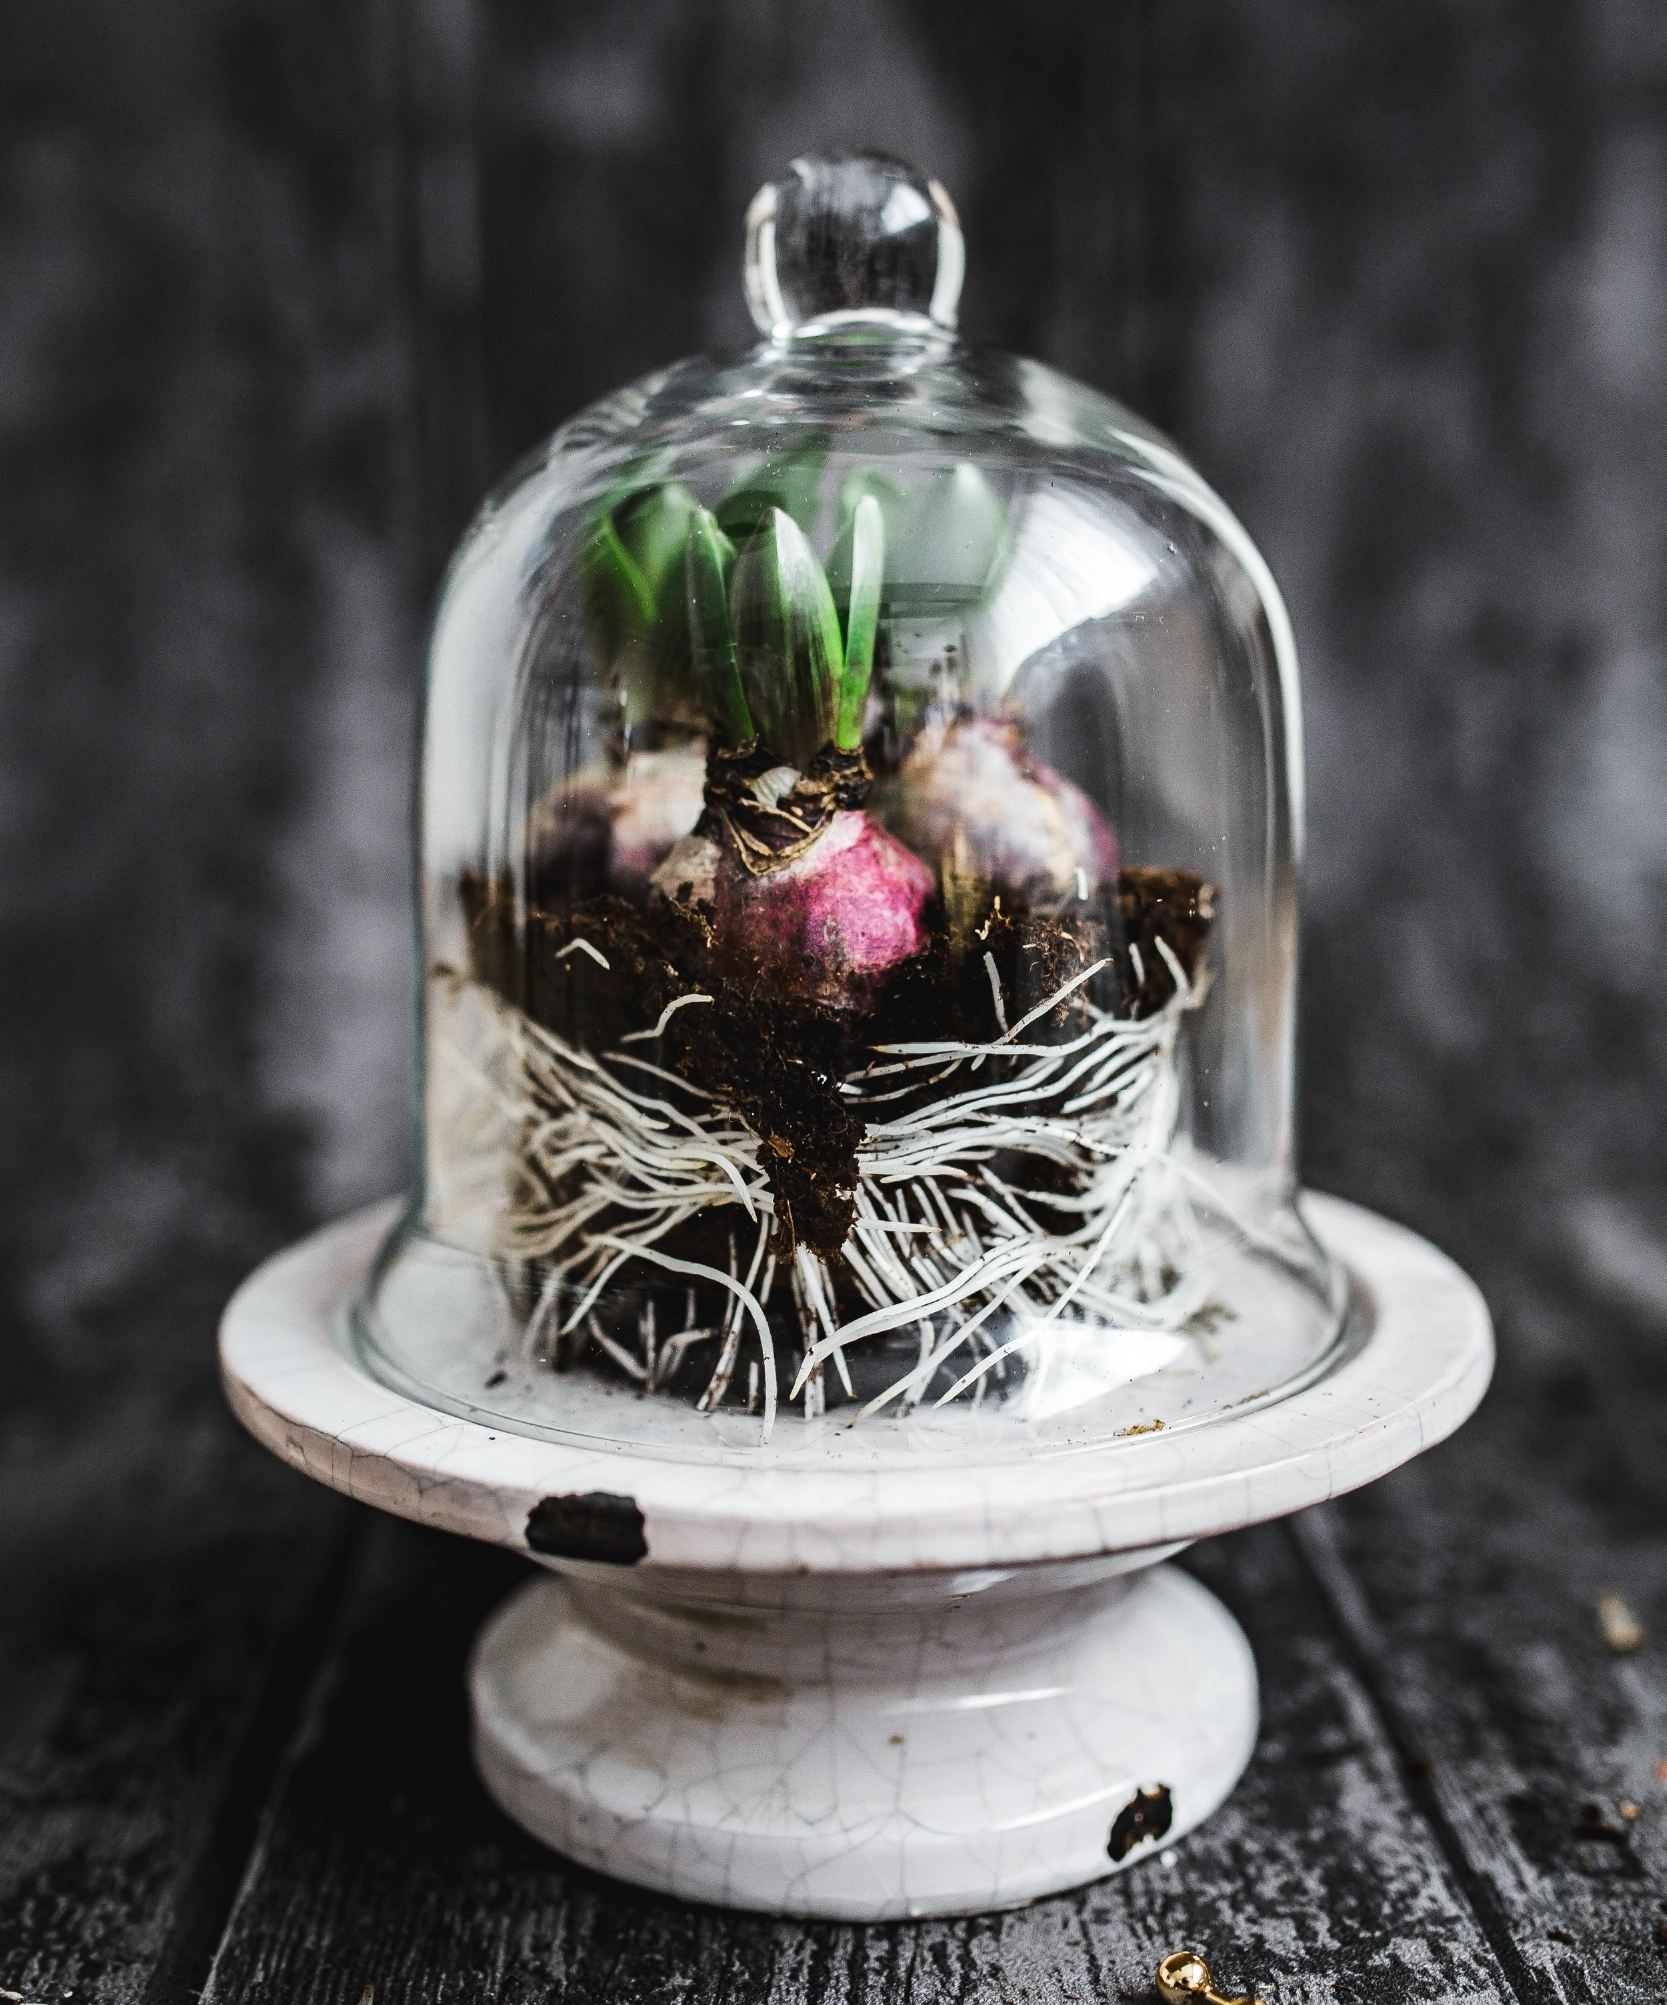 www.JadoreleDecor.com | Crush the Look by Anchoring it With Black | Regardless of your preferred decor style, a little bit of black will raise it to another level